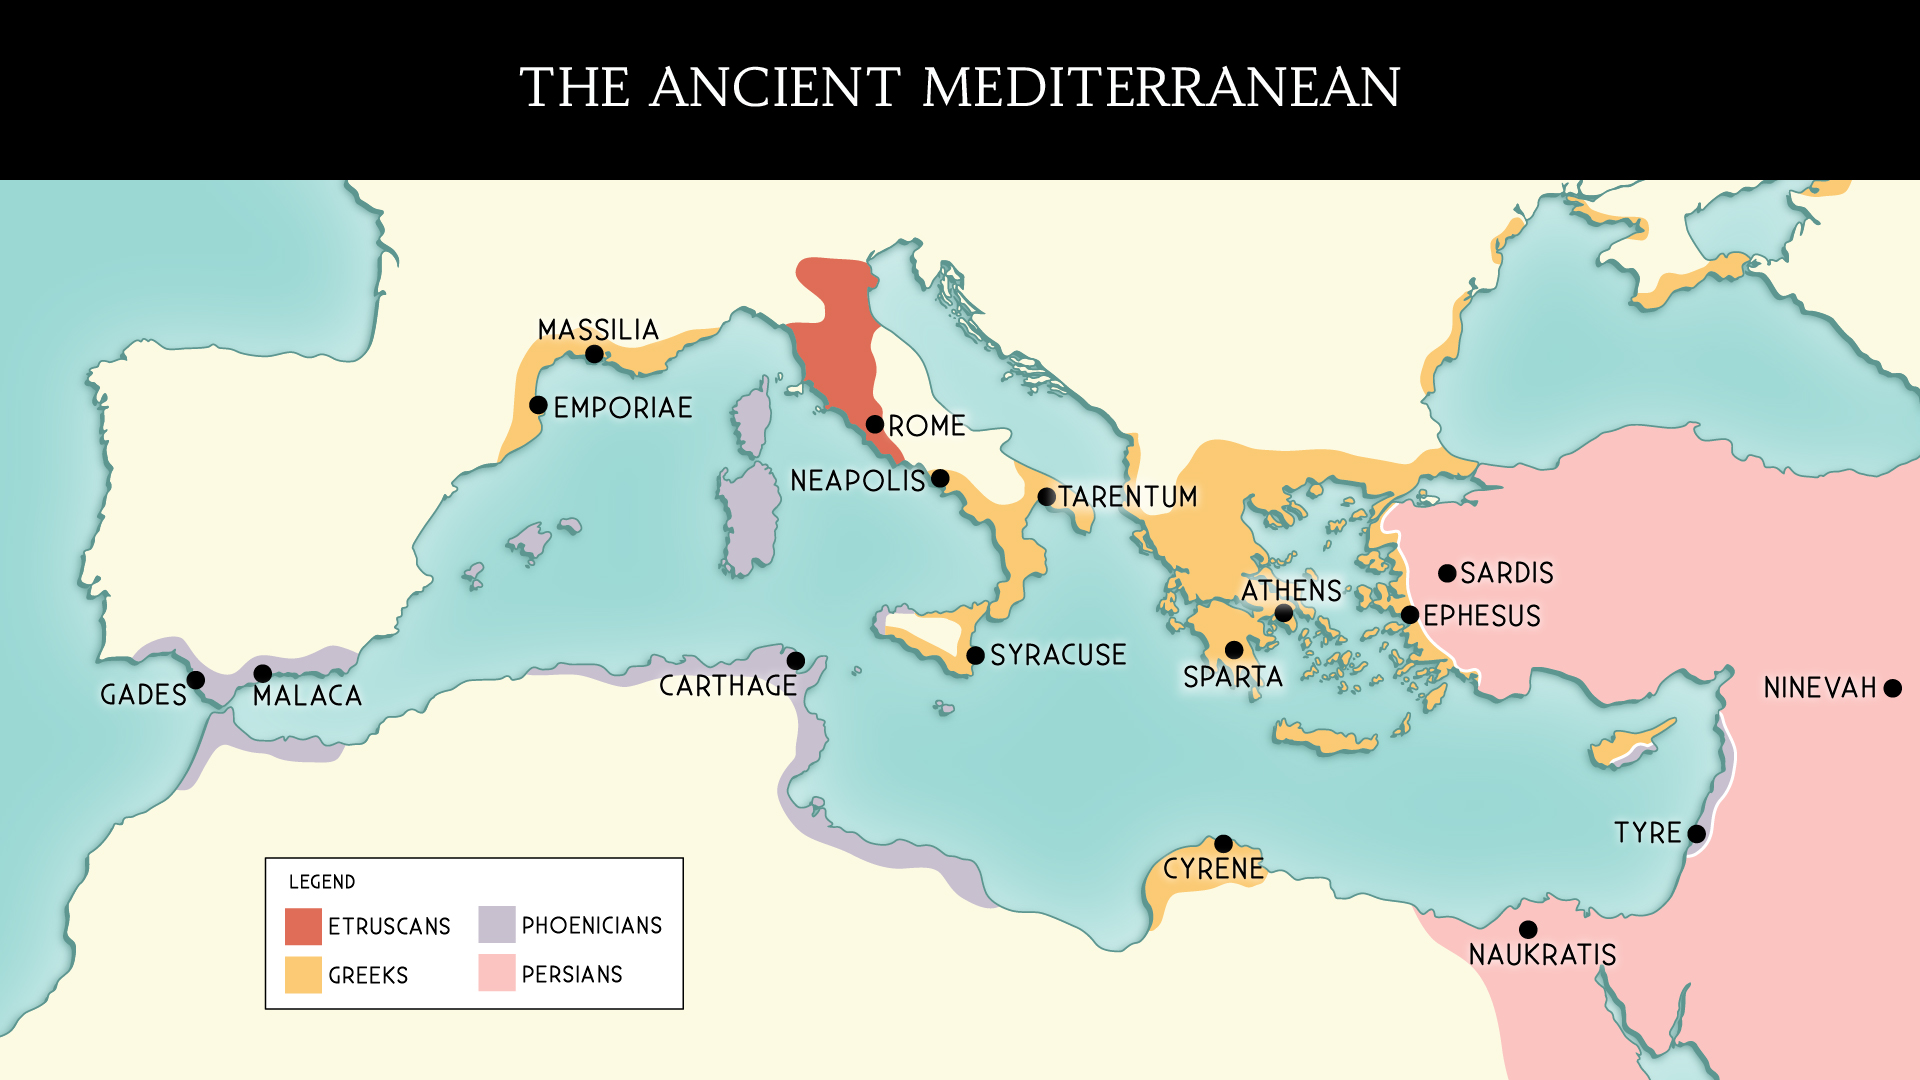 Map of the ancient mediterranean civilizations